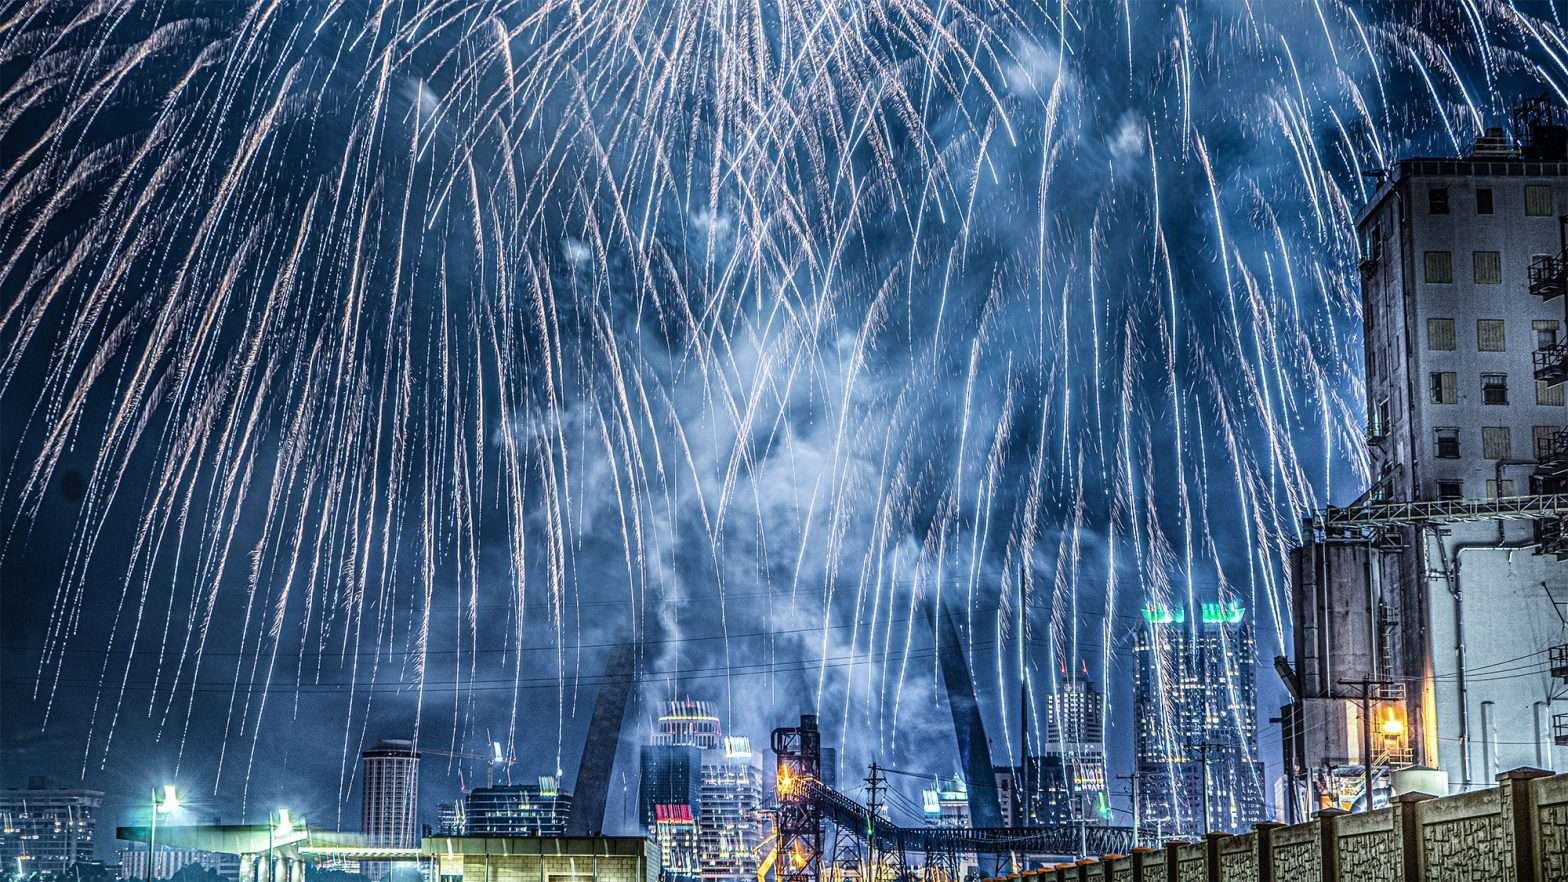 Fireworks New Years with St Louis Gateway Arch in view.